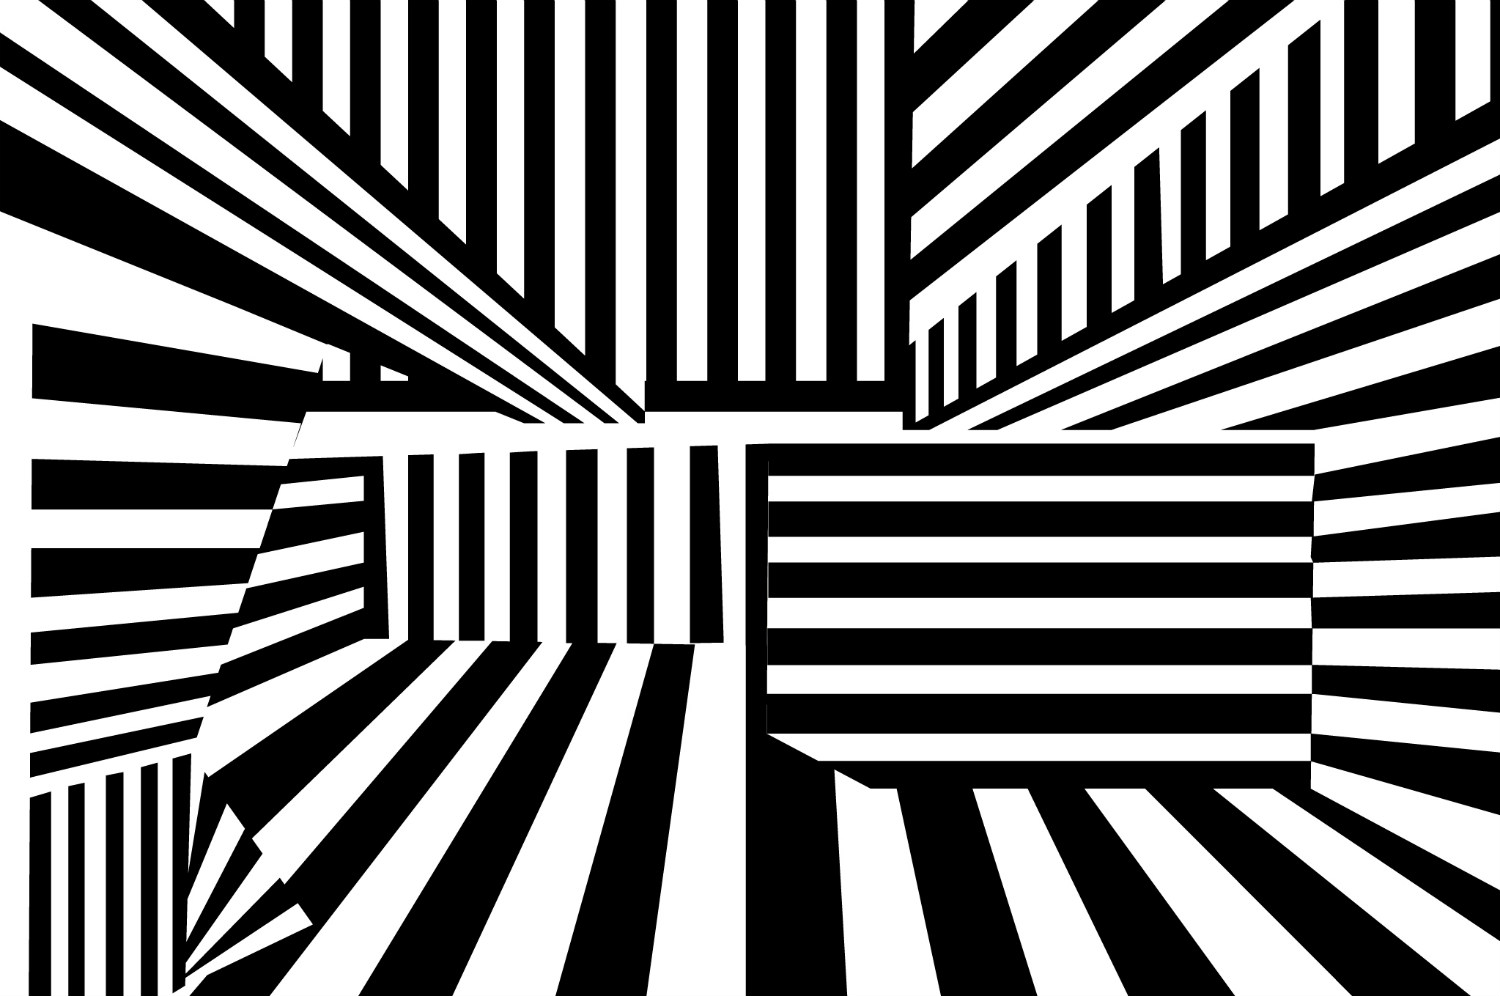 Victor Vasarely op art black white stripes